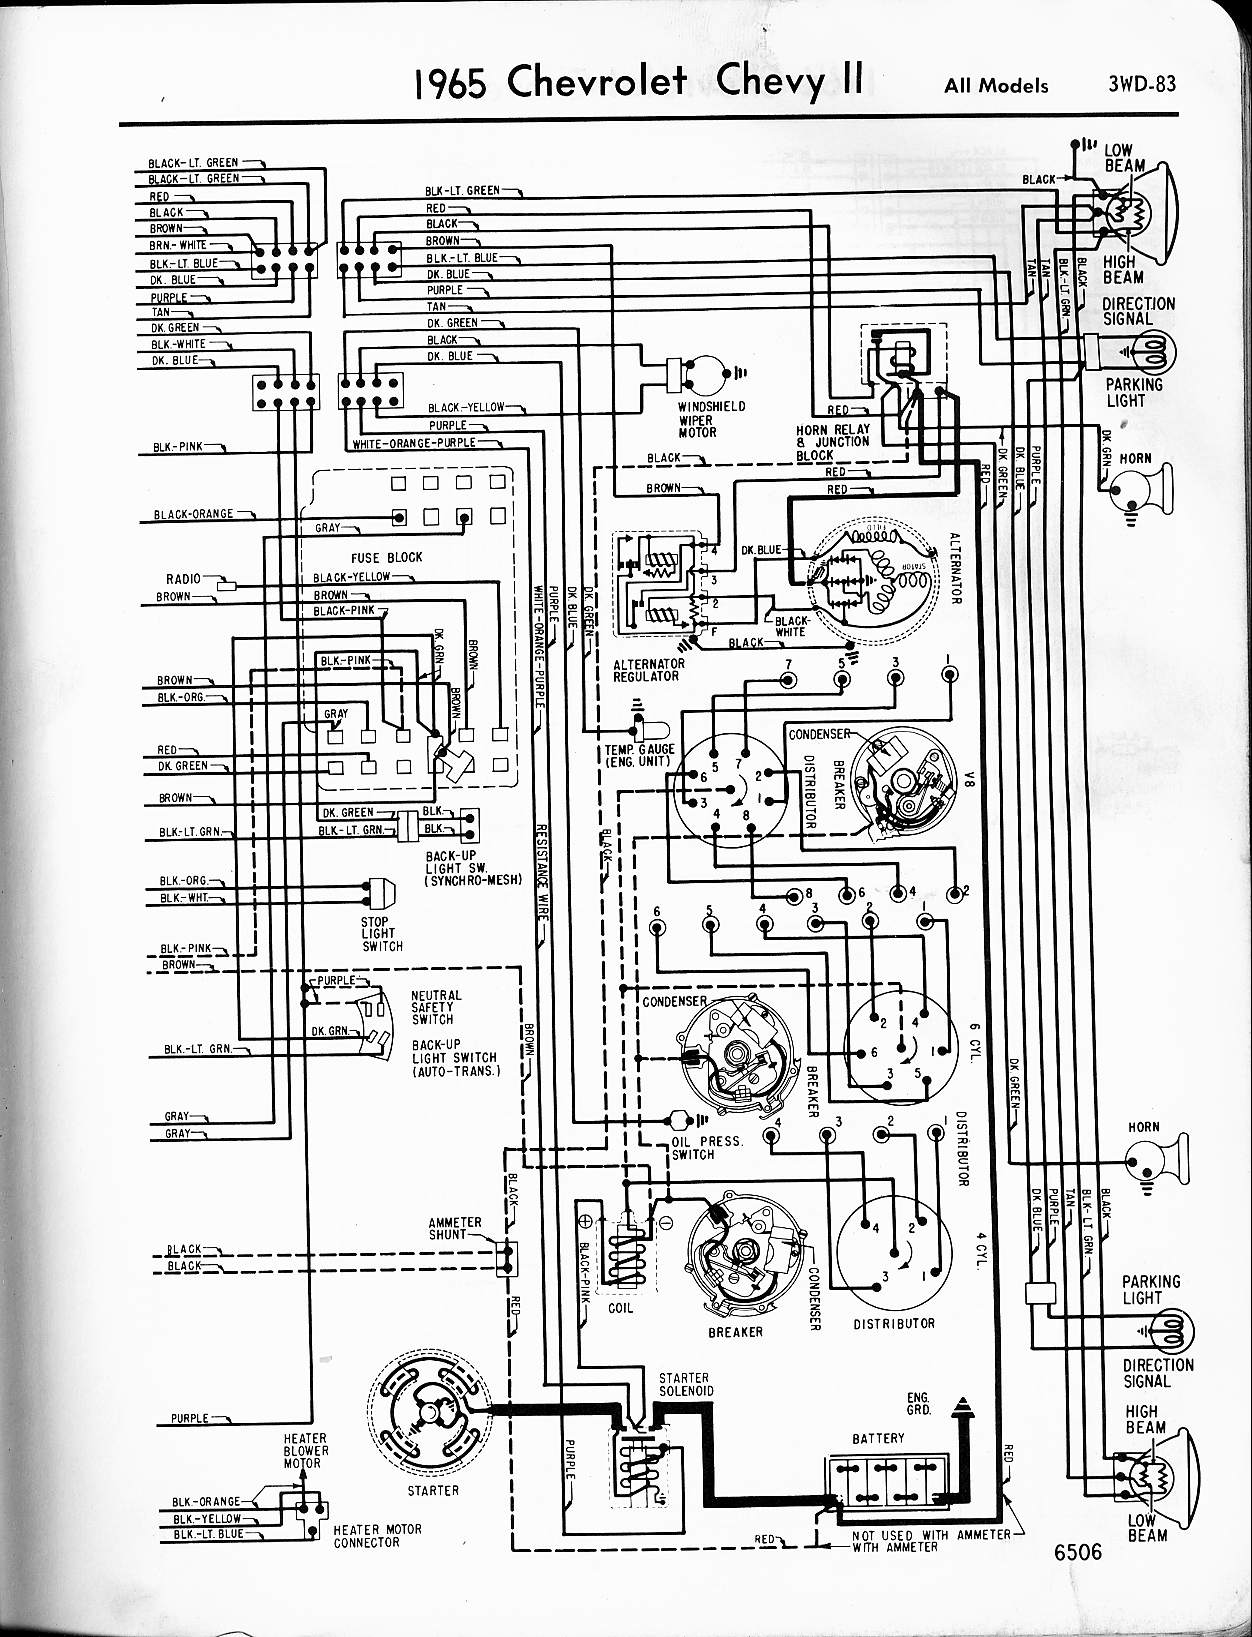 MWireChev65_3WD 083 1974 chevy truck wiring diagram 1974 chevrolet wiring diagram  at gsmx.co